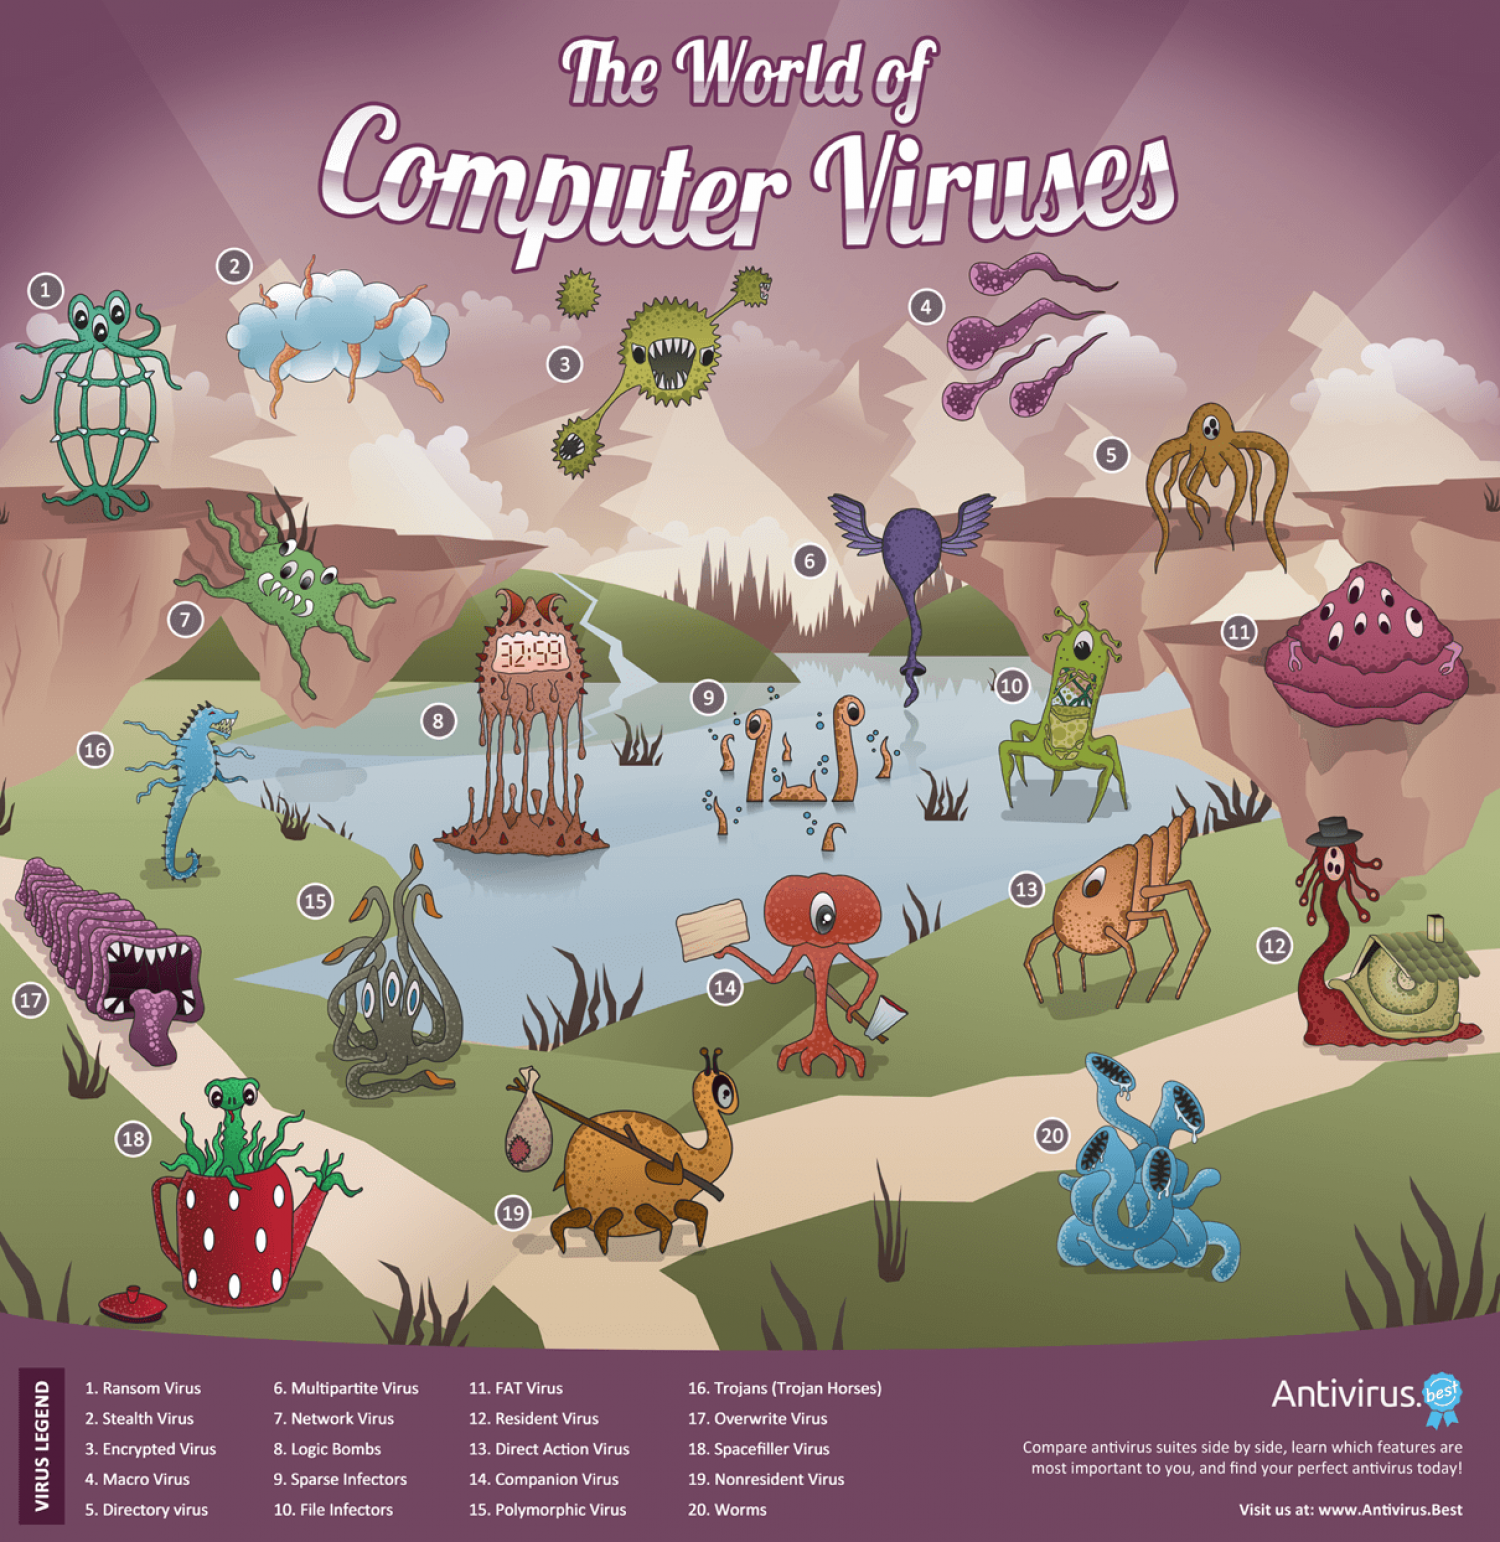 The world of computer viruses Infographic